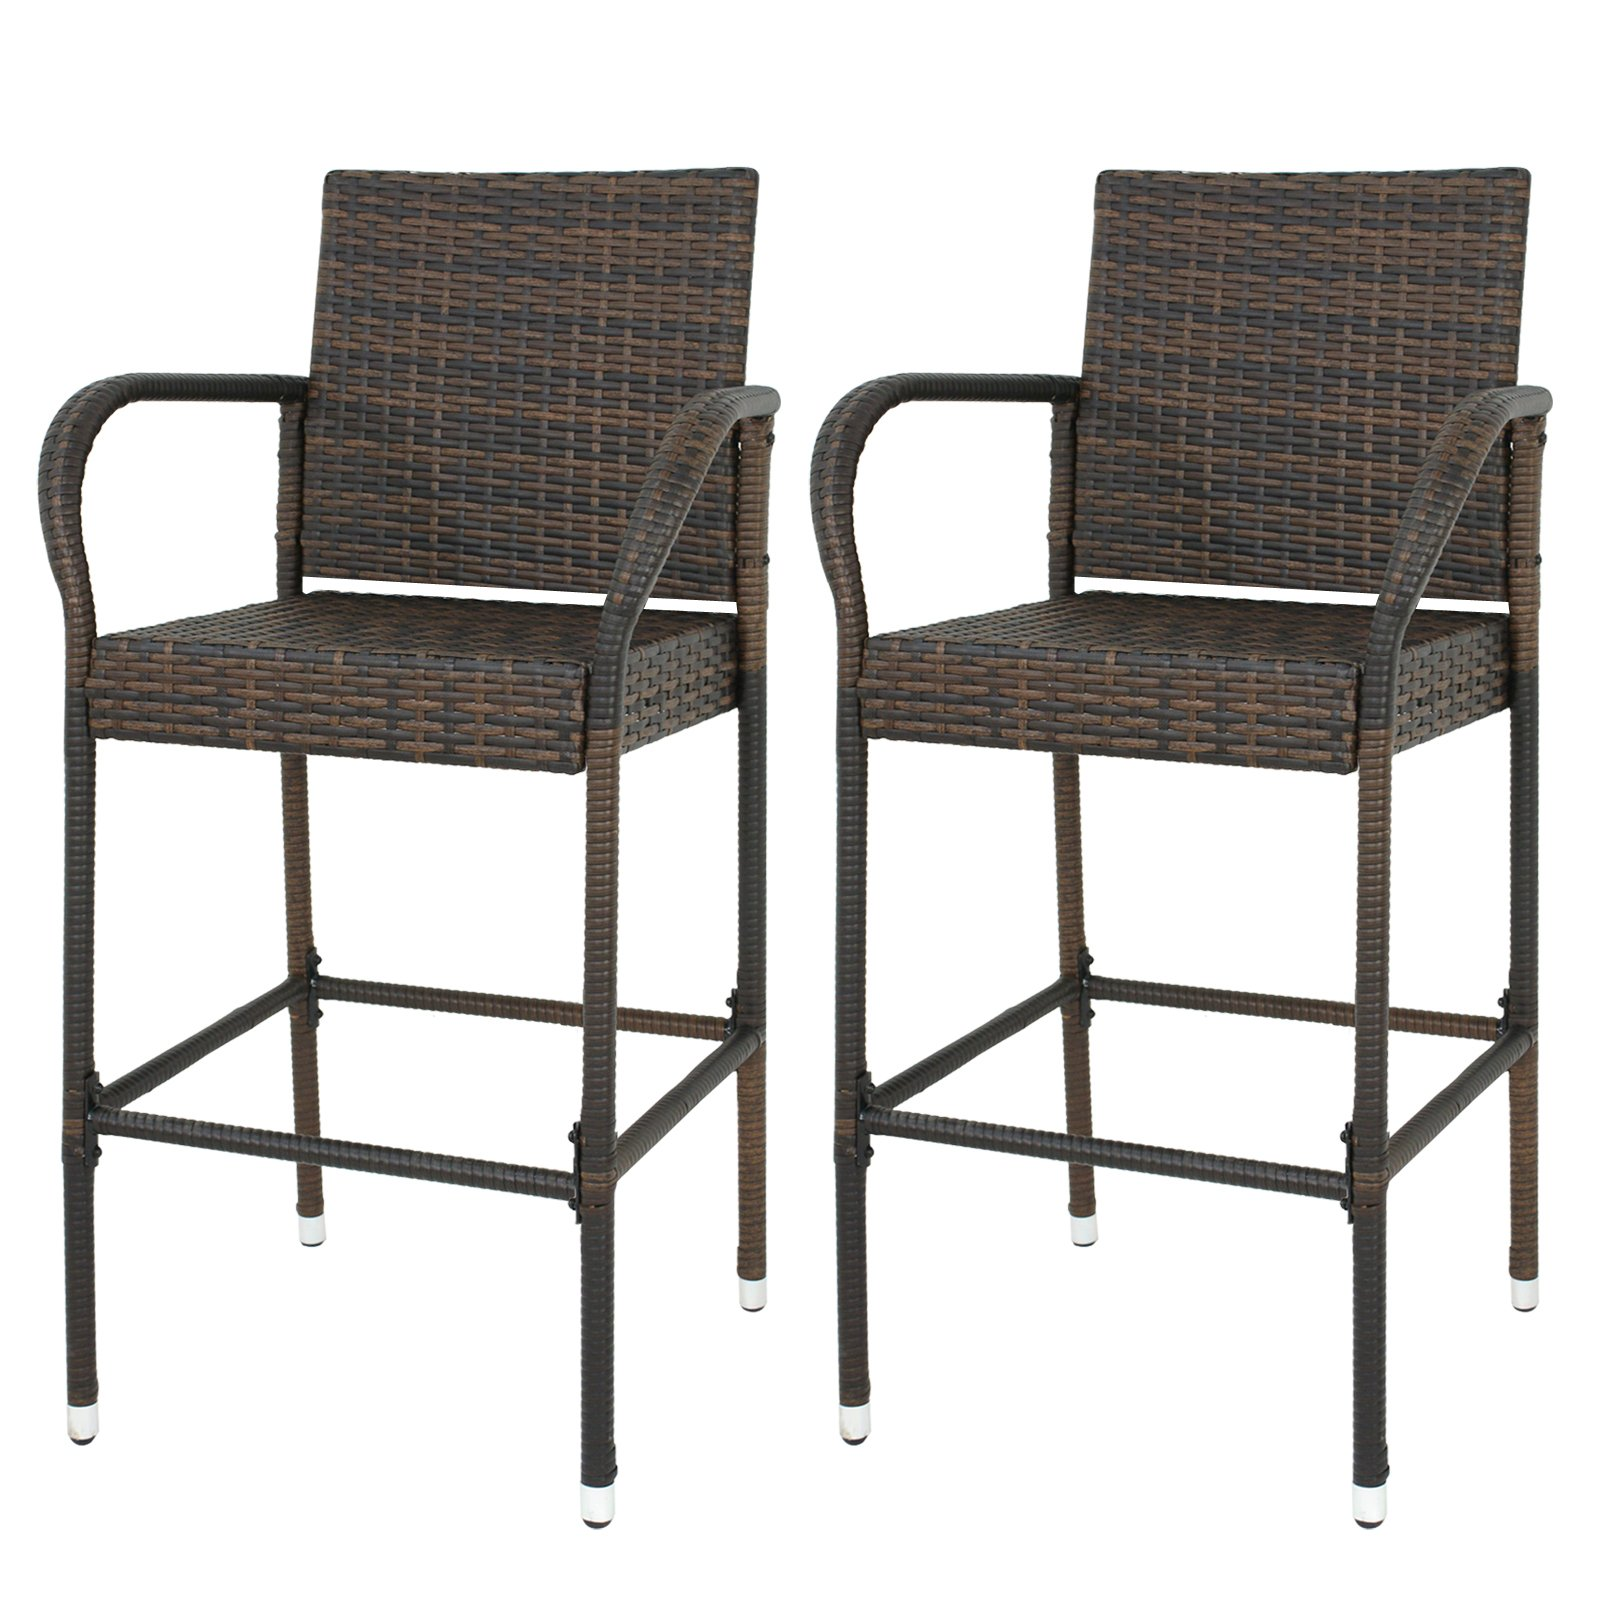 SUPER DEAL Wicker Bar Stool Outdoor Backyard Rattan Chair Patio Furniture Chair w/Iron Frame, Armrest and Footrest, Set of 4 by SUPER DEAL (Image #3)